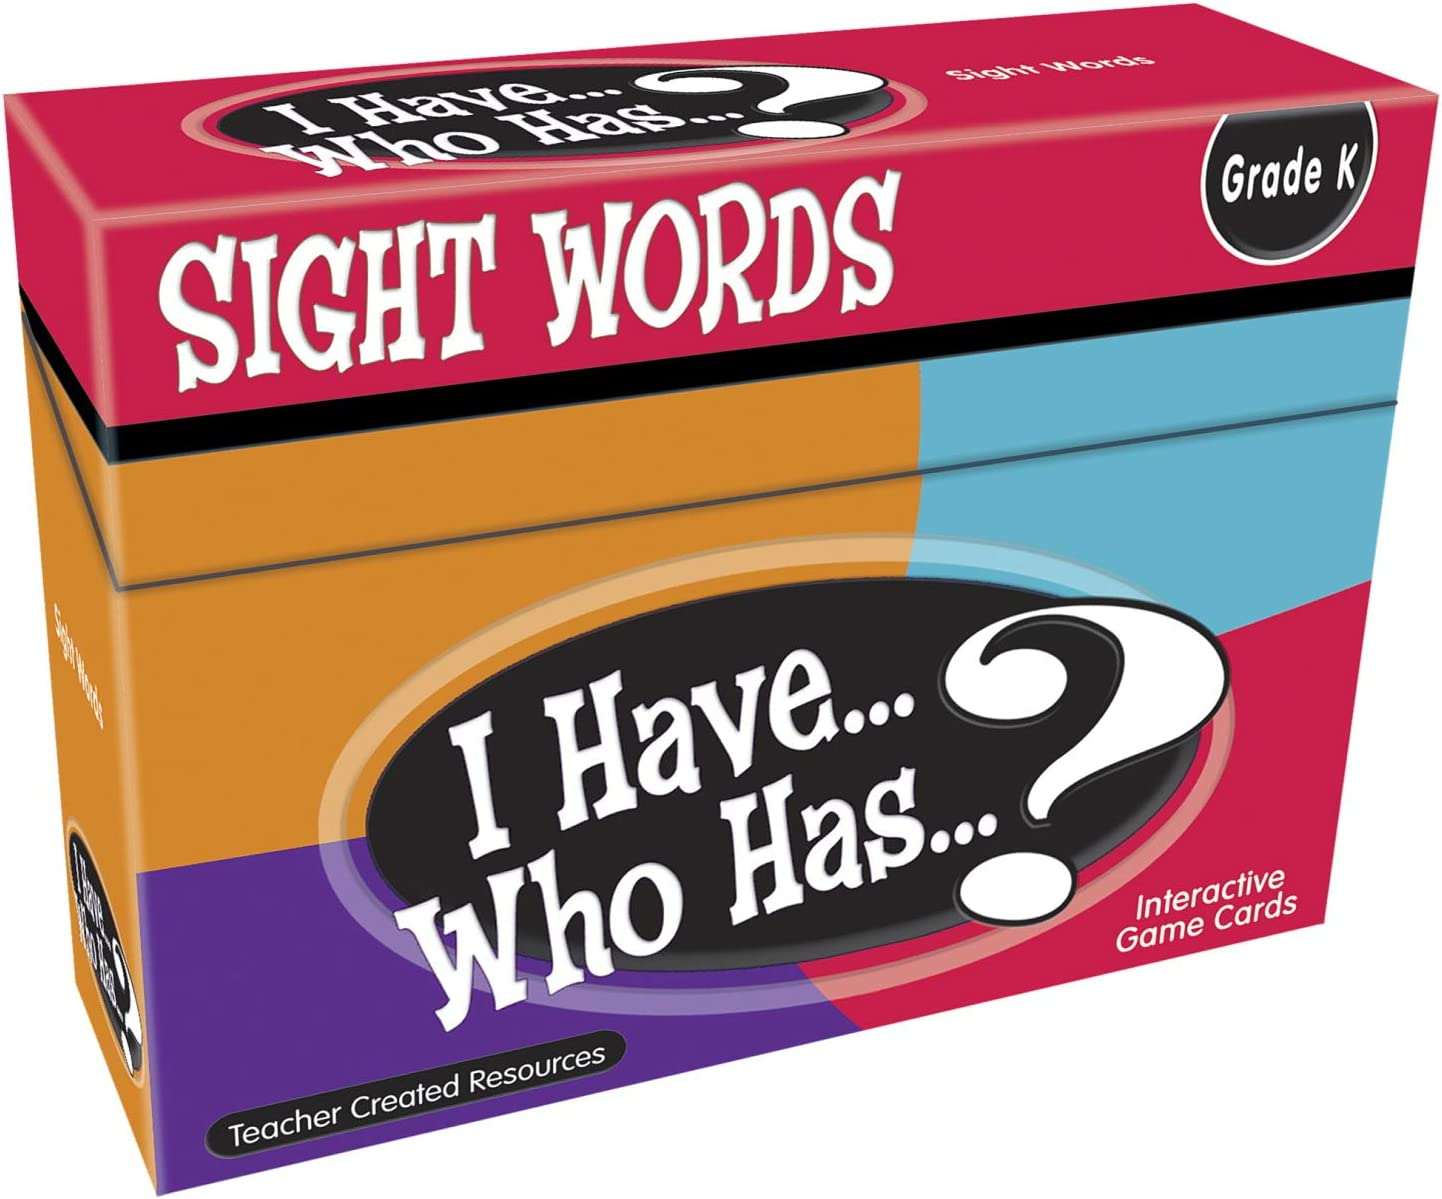 Teacher Created Resources I Have. Who Has.? Sight Words Grade K (7868), Multicolor : Office Products